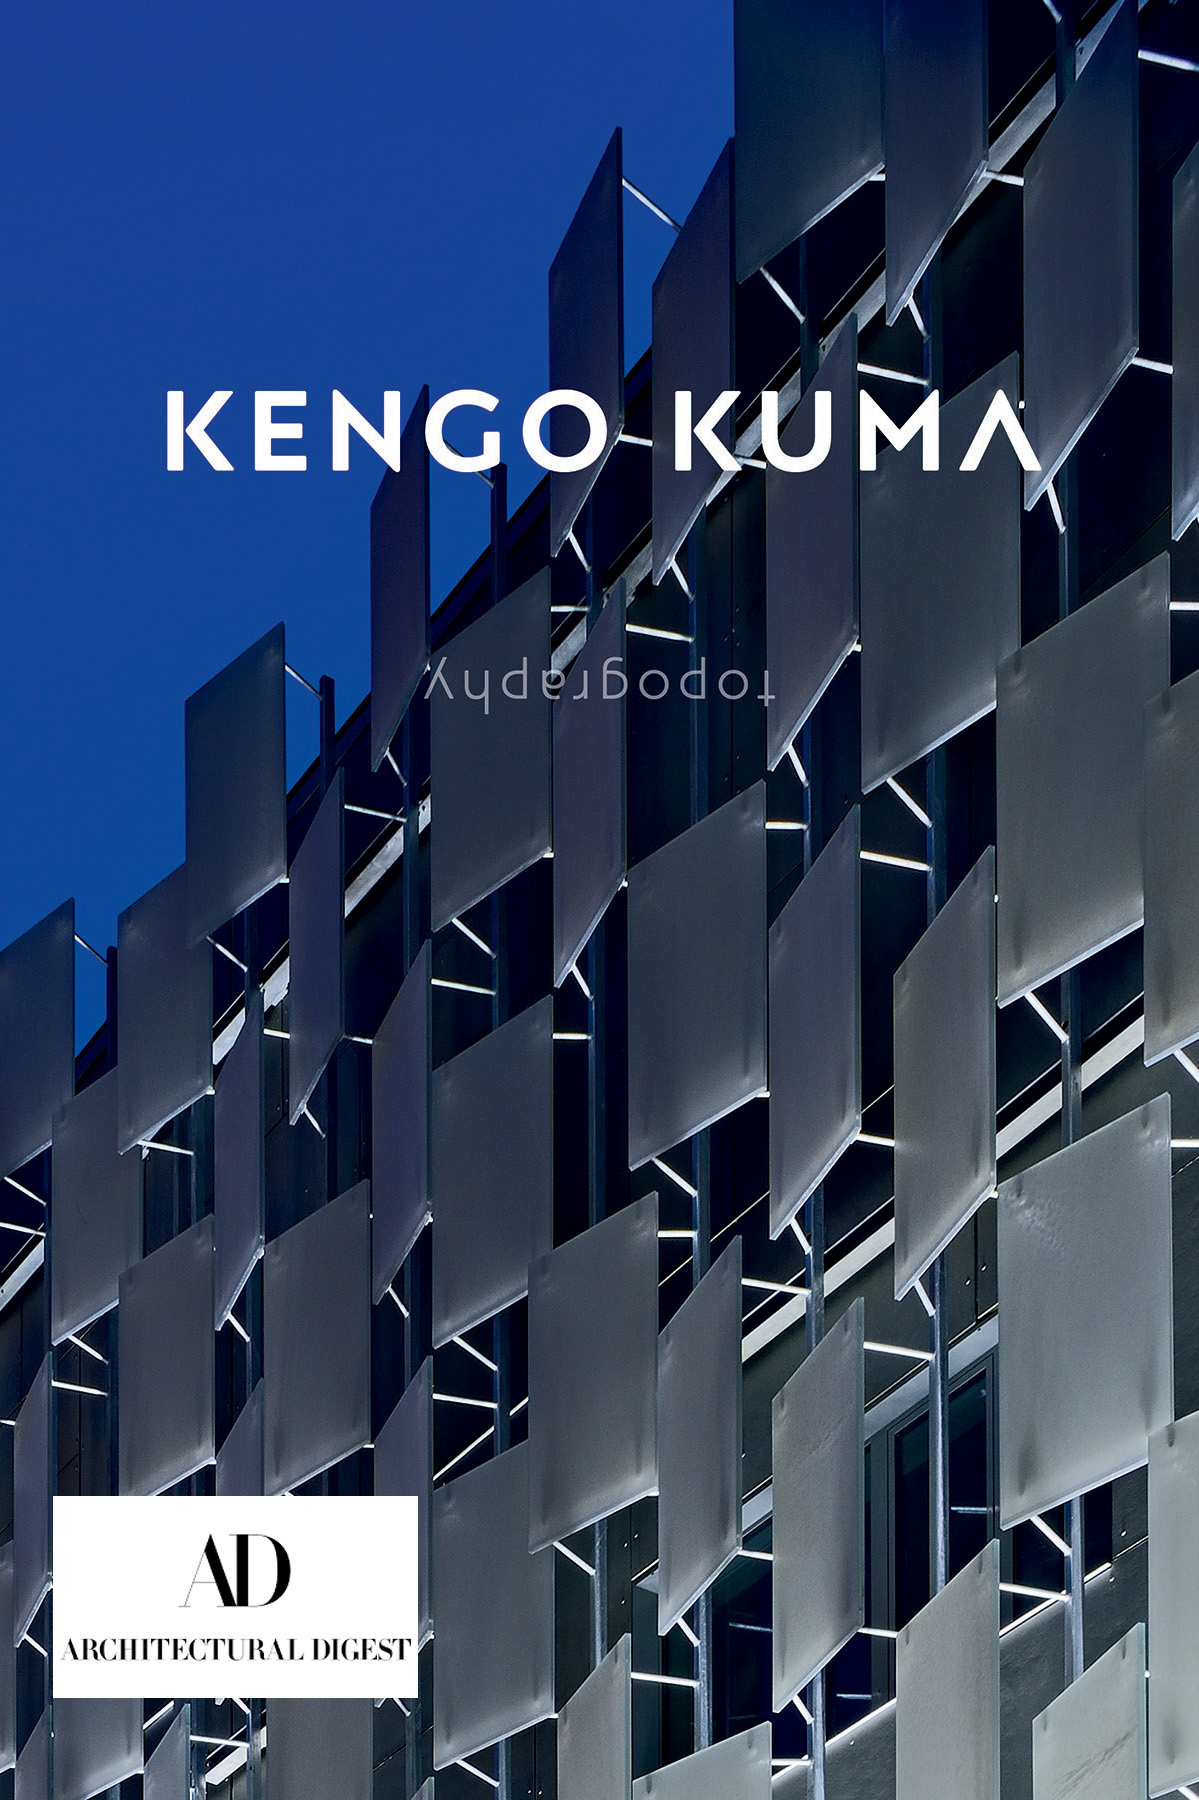 highly anticipated monograph of Kengo Kuma's work chronicles close to forty key works from around the globe.